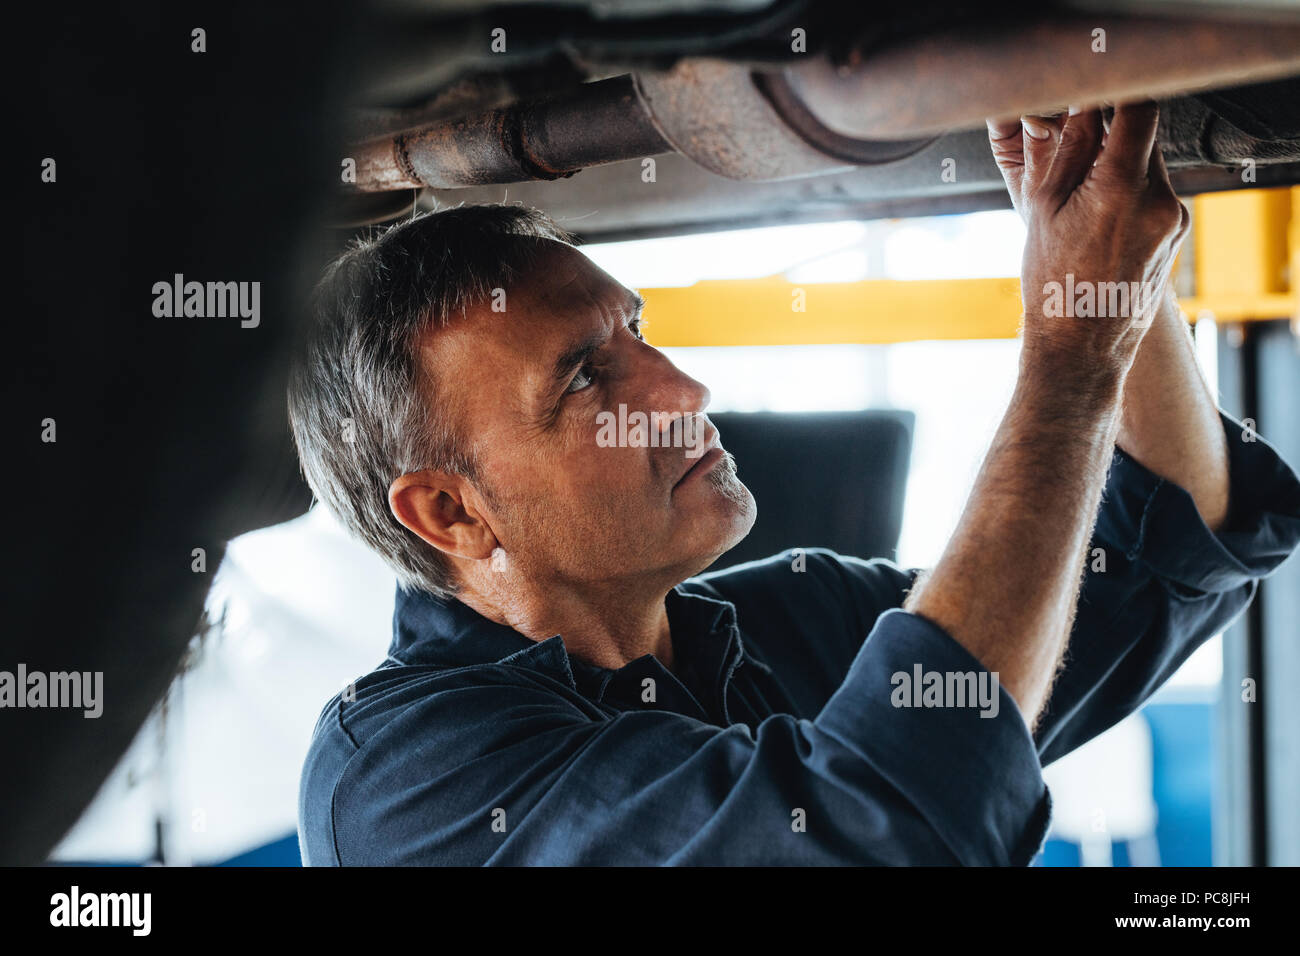 Portrait of a mechanic at work in his garage. Mature auto technician working under a car service station. - Stock Image